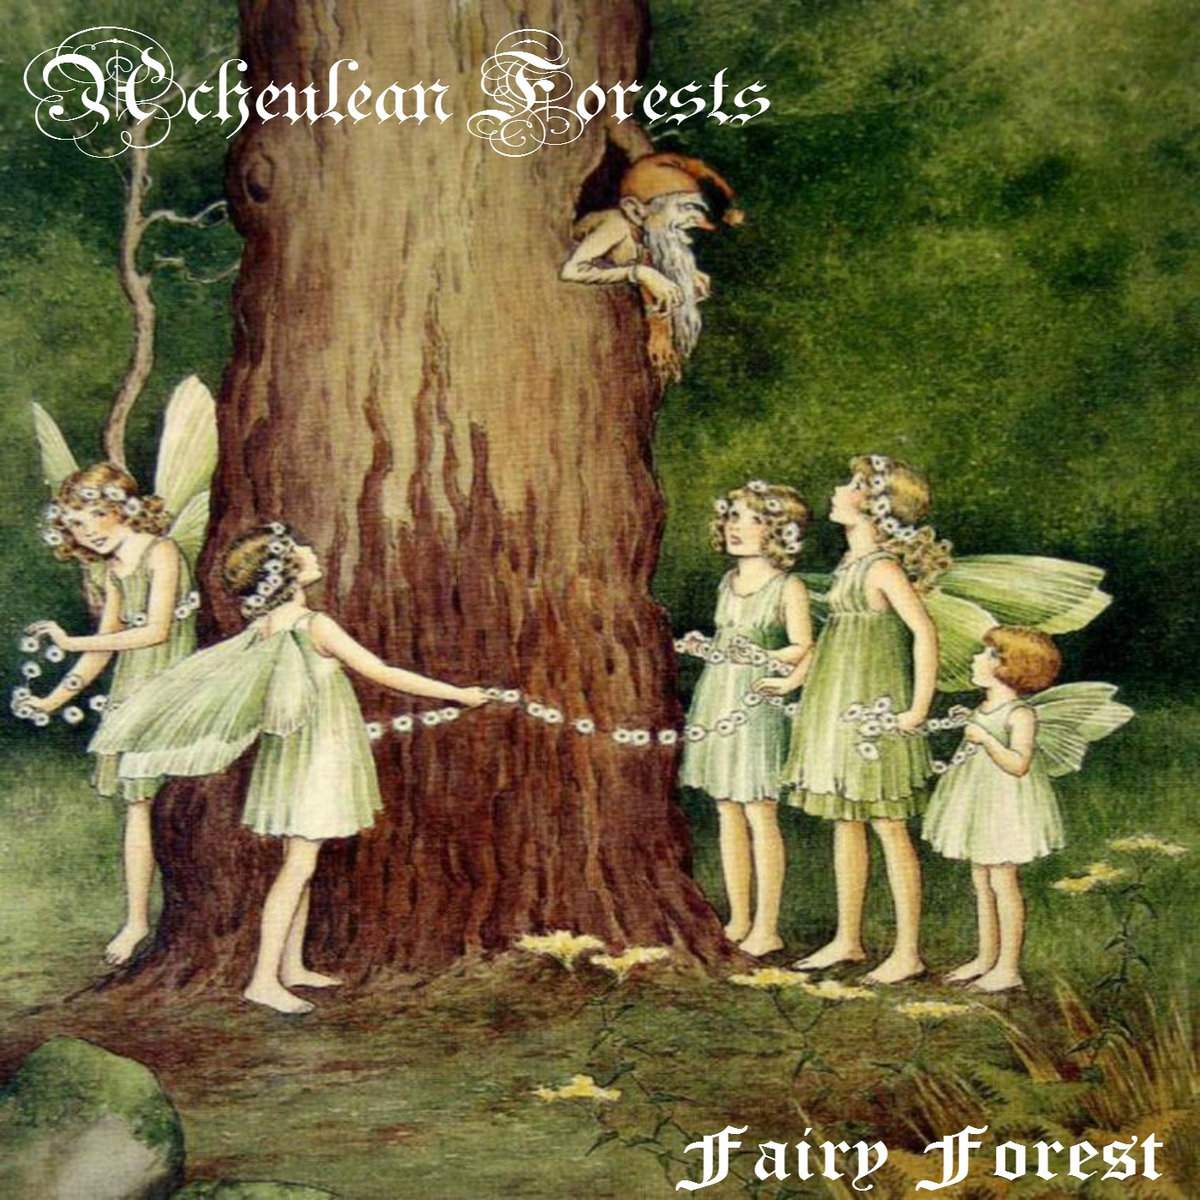 fairy forest acheulean forests